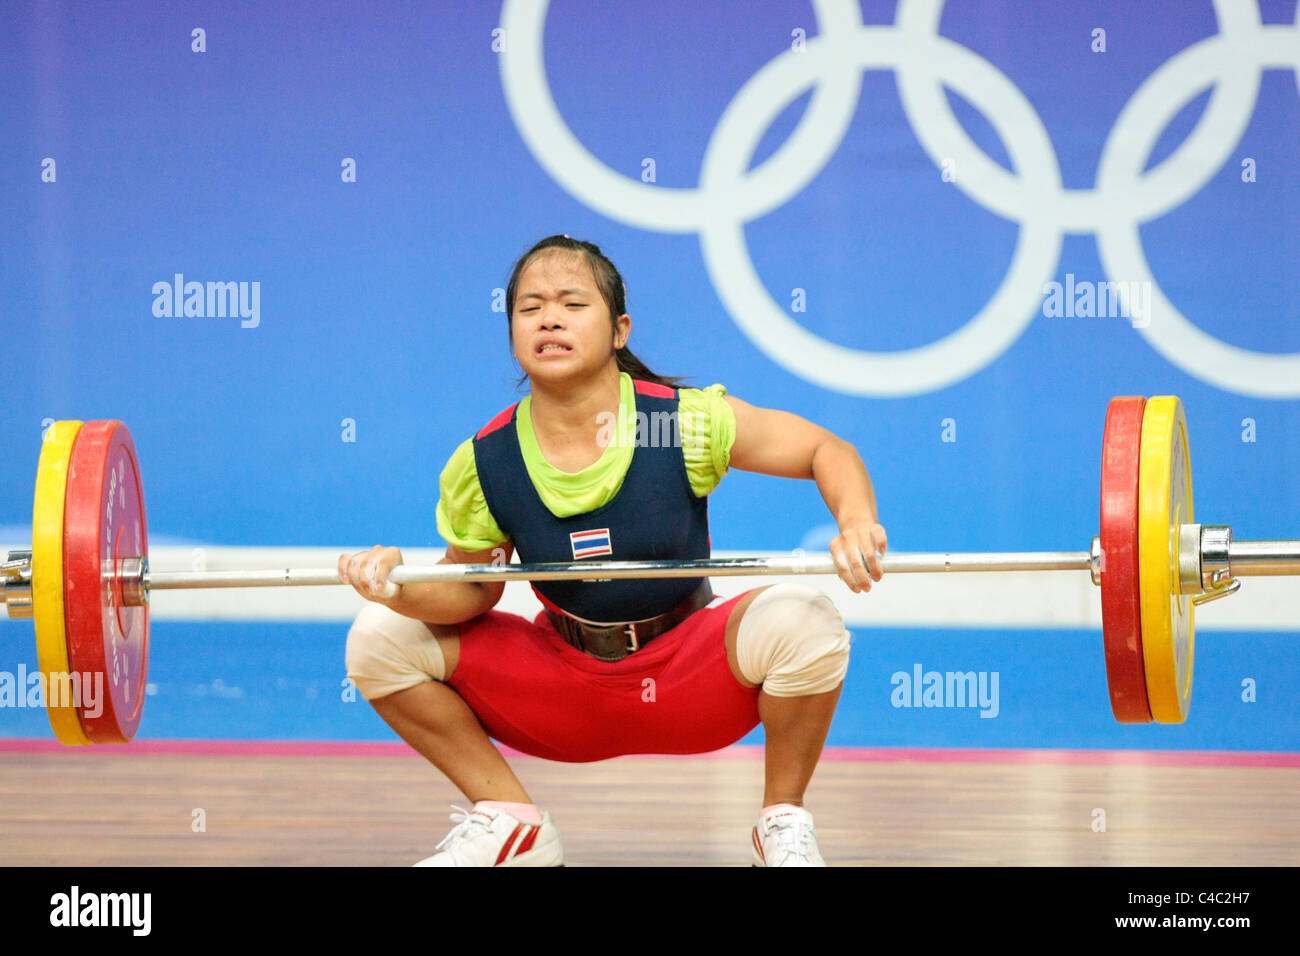 100 KG proves to be too much weight for Thailand's Sirivimon Pramongkhol as she fails to lift it. - Stock Image